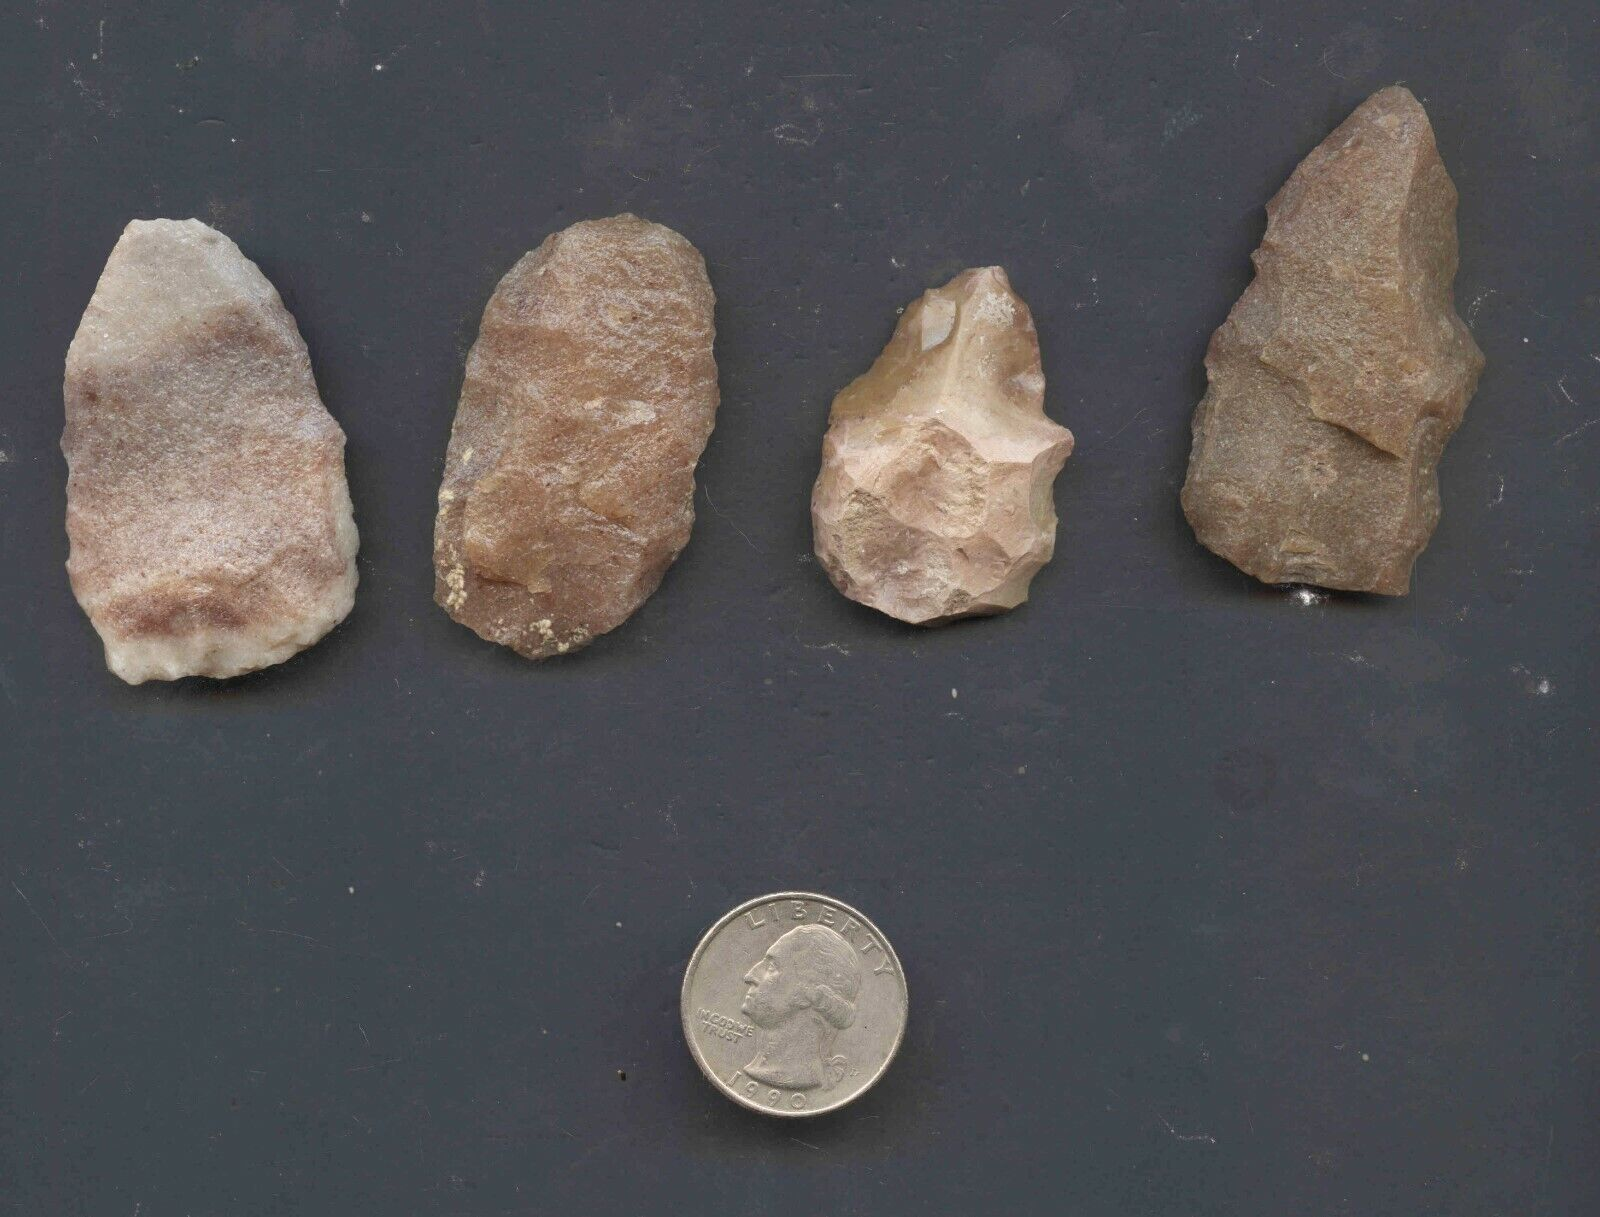 SET OF 4 ARROWHEADS AUTHENTIC NATIVE AMERICAN ARTIFACTS